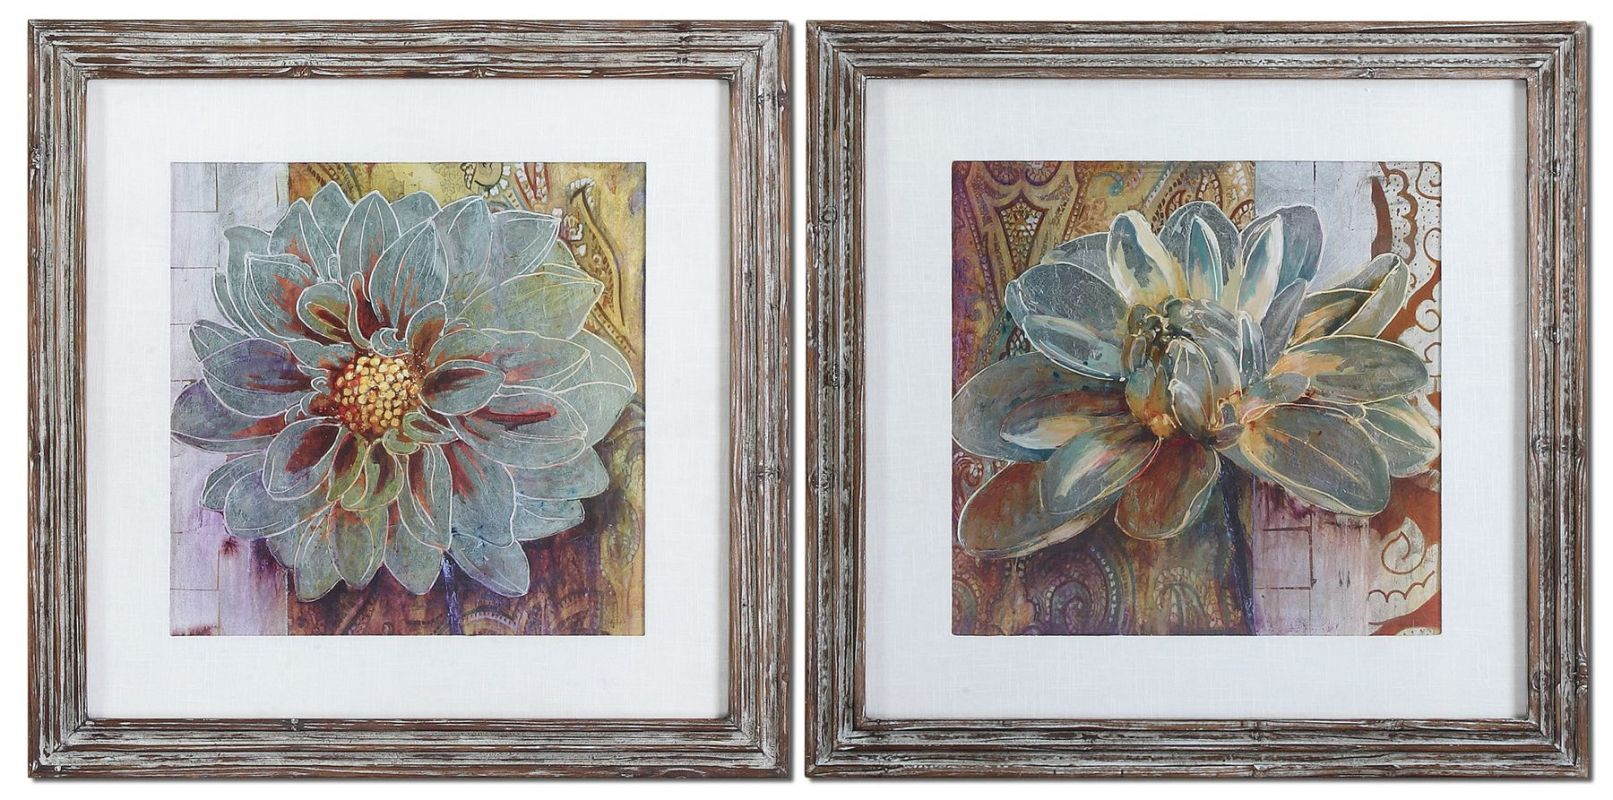 Uttermost 34036 Sublime Truth Set of 2 Wall Art Medium Brown and Blues